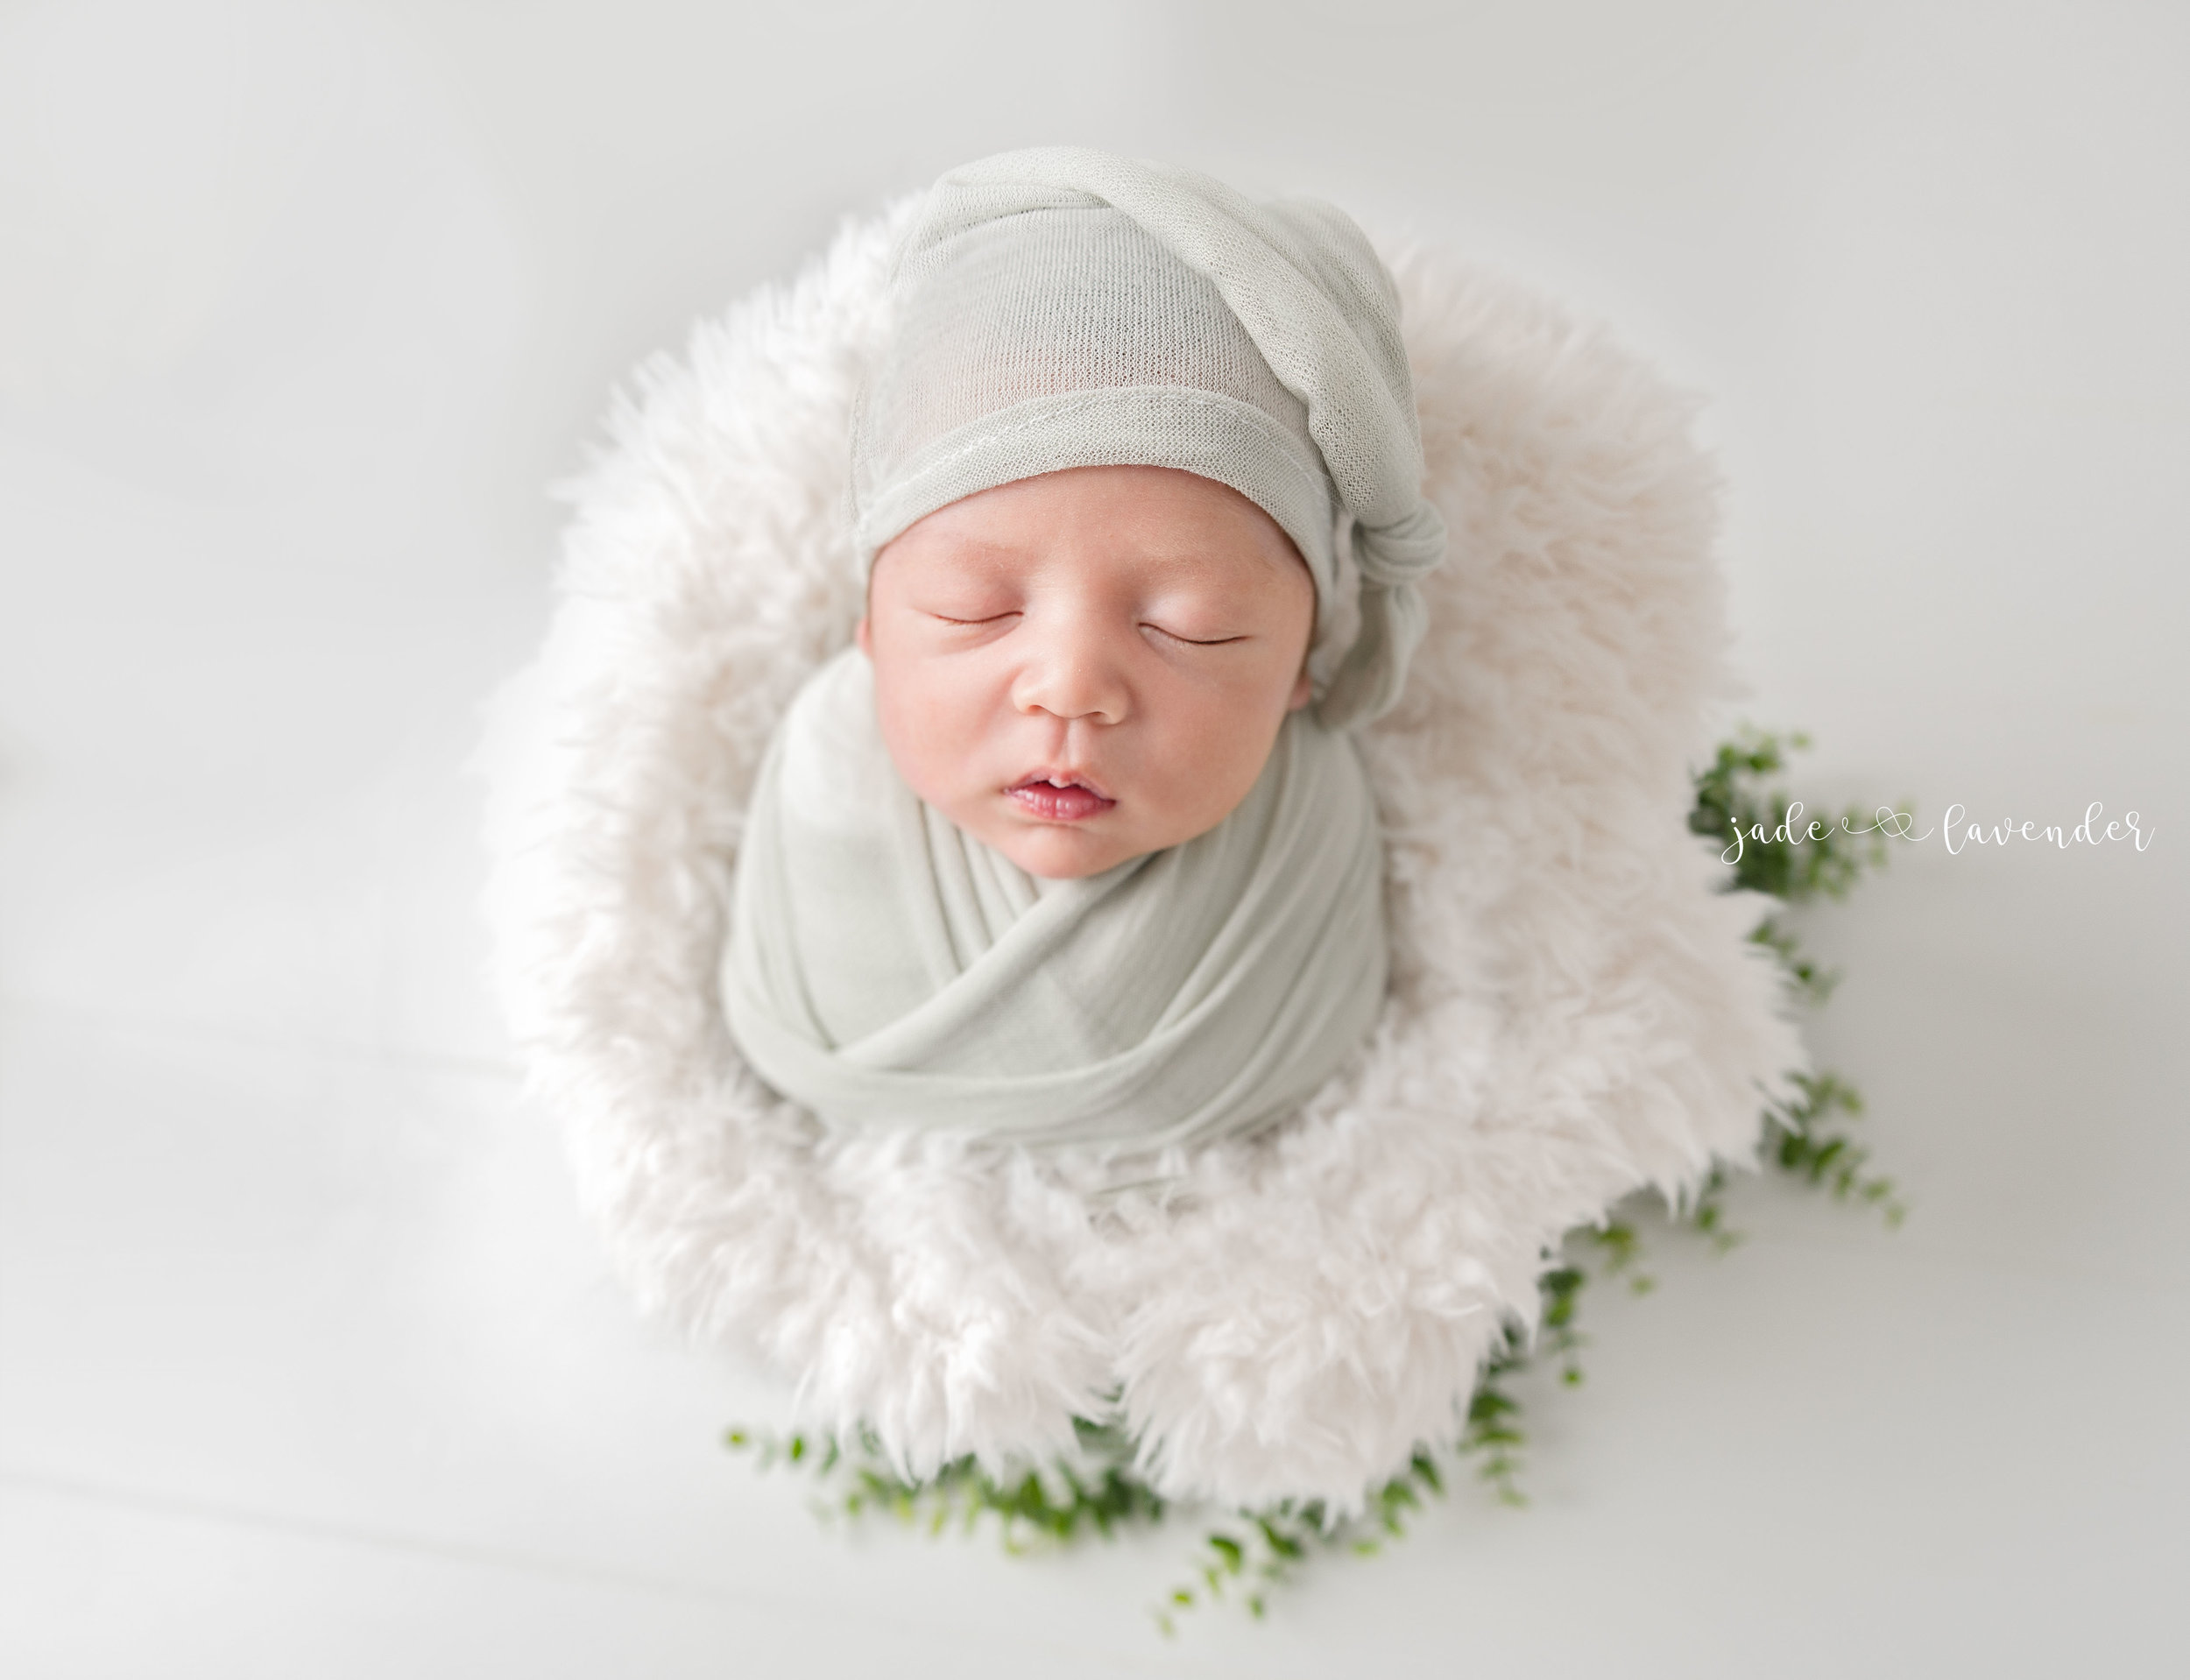 Newborn-photography-baby-images-infant-photos-baby-boy-mini-session-spokane-washington (5 of 7).jpg